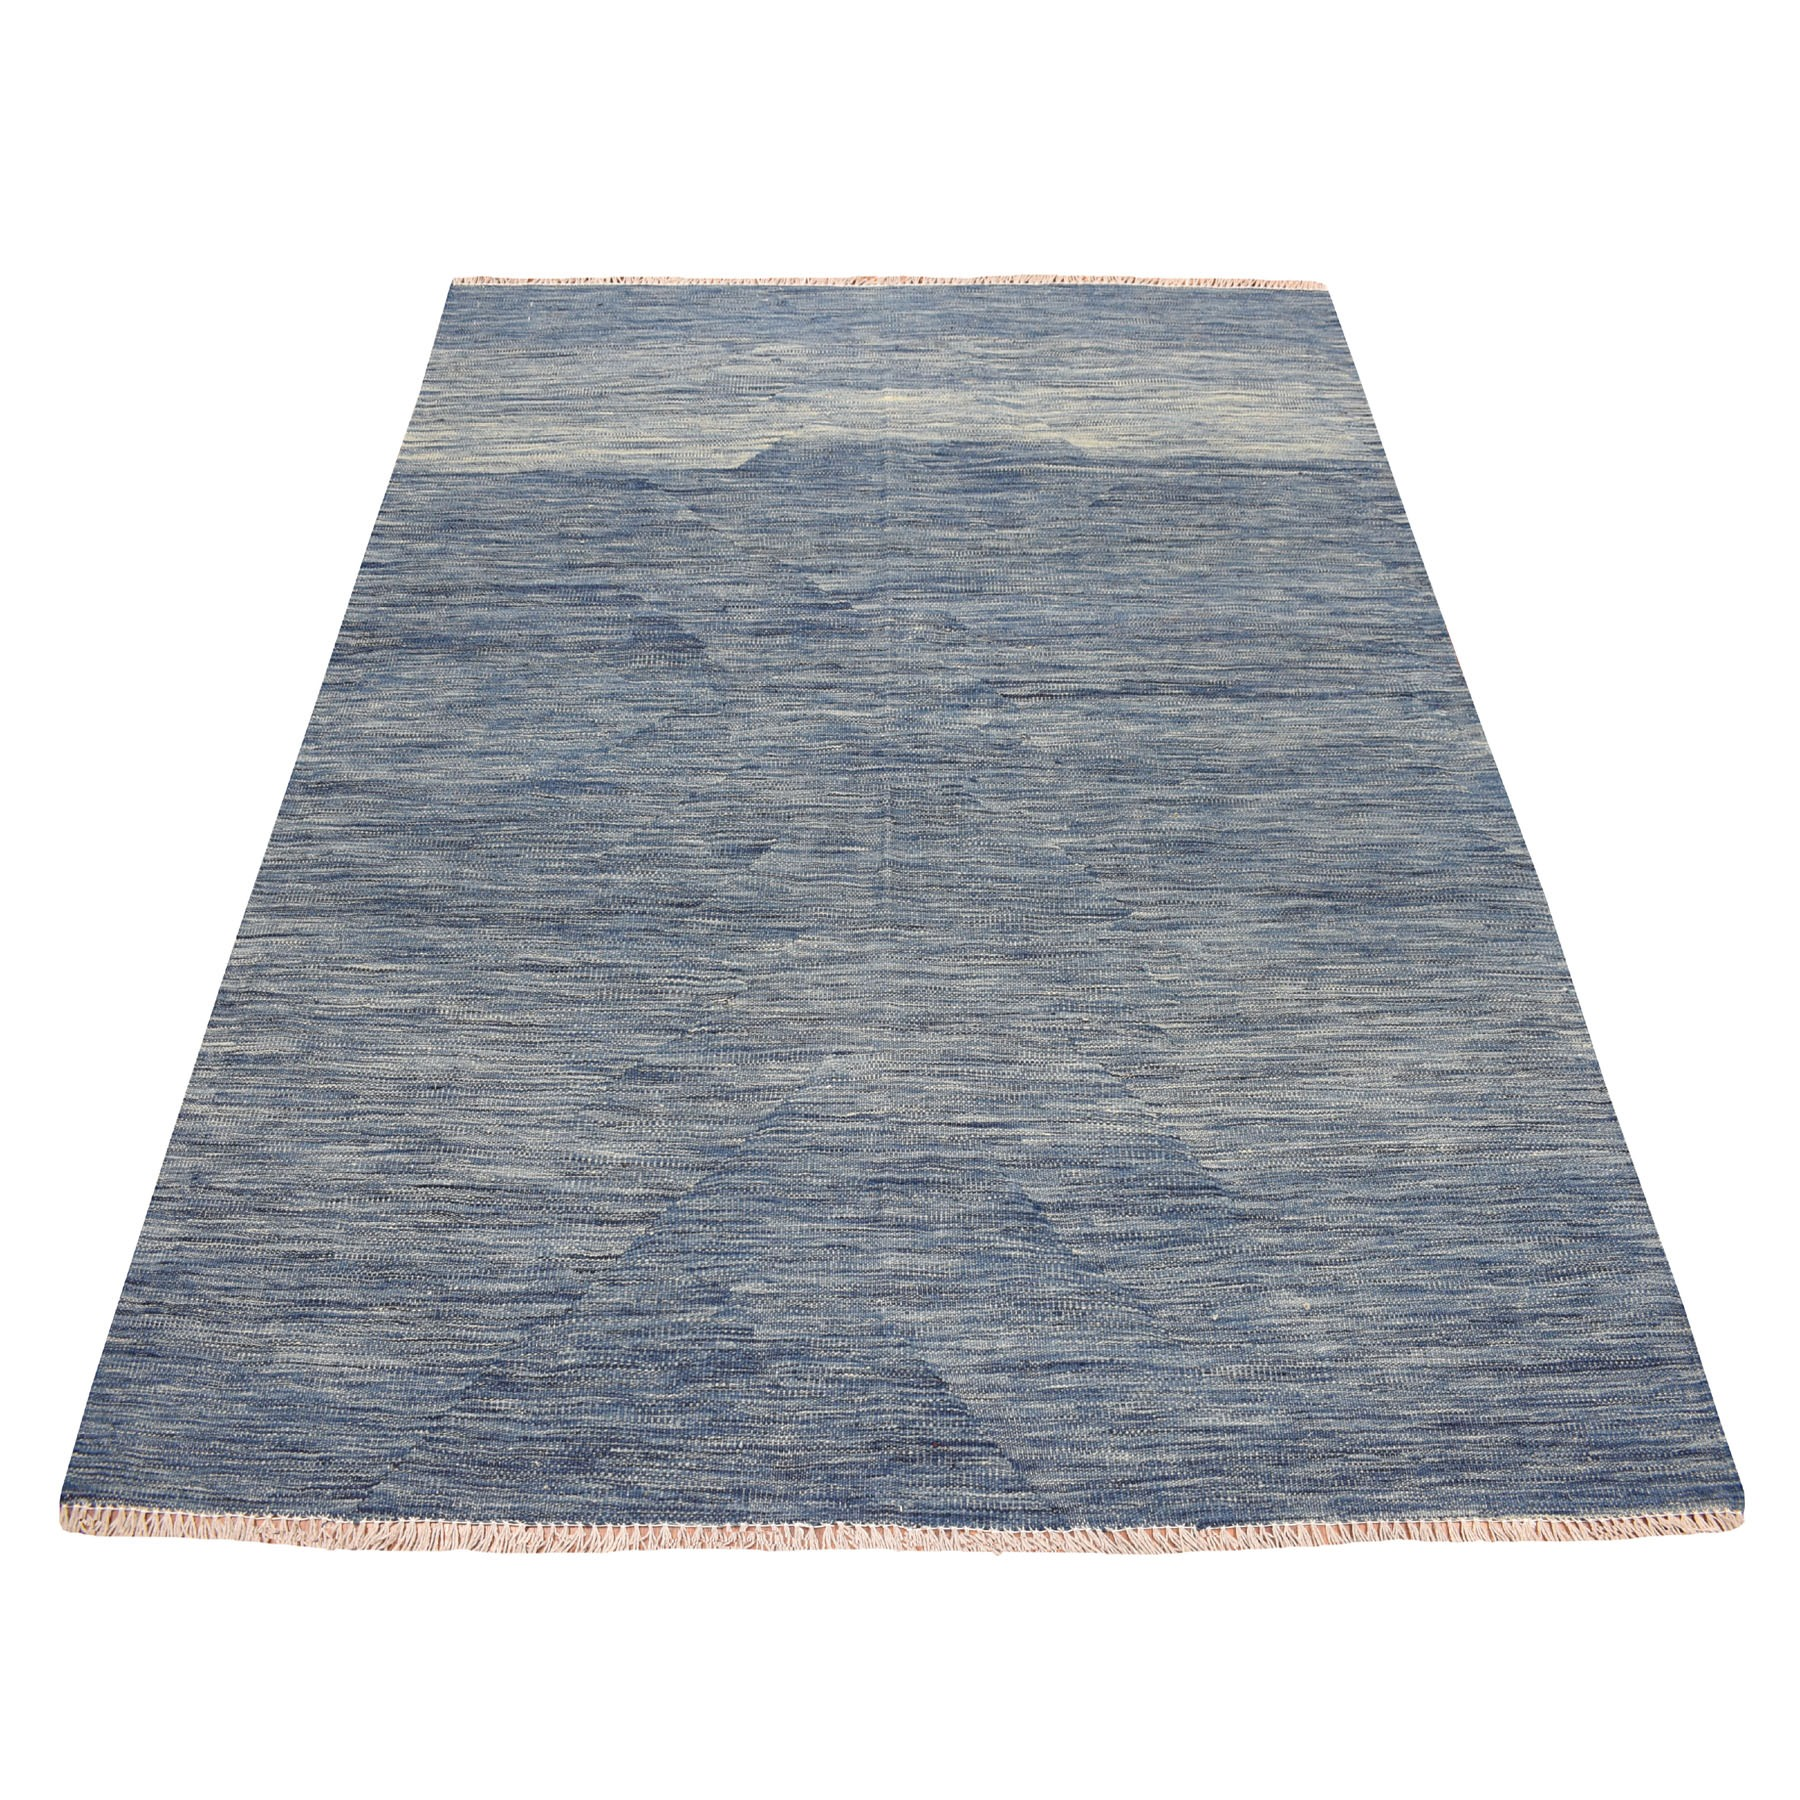 Fine Kilim Collection Hand Woven Blue Rug No: 01108438